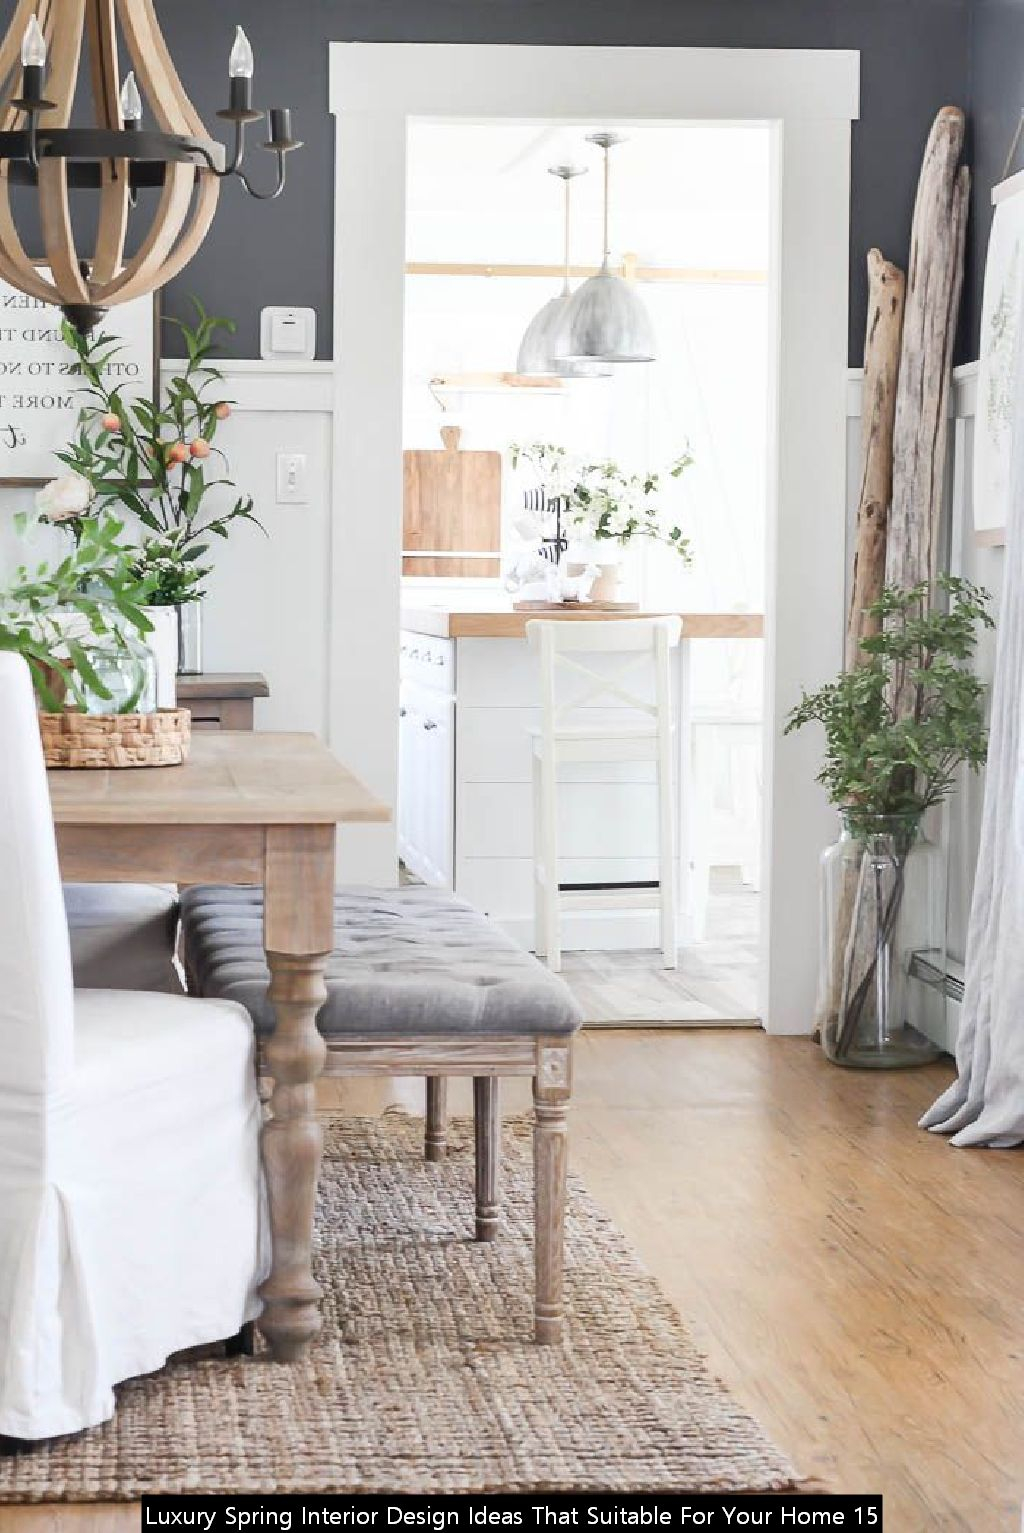 Luxury Spring Interior Design Ideas That Suitable For Your Home 15